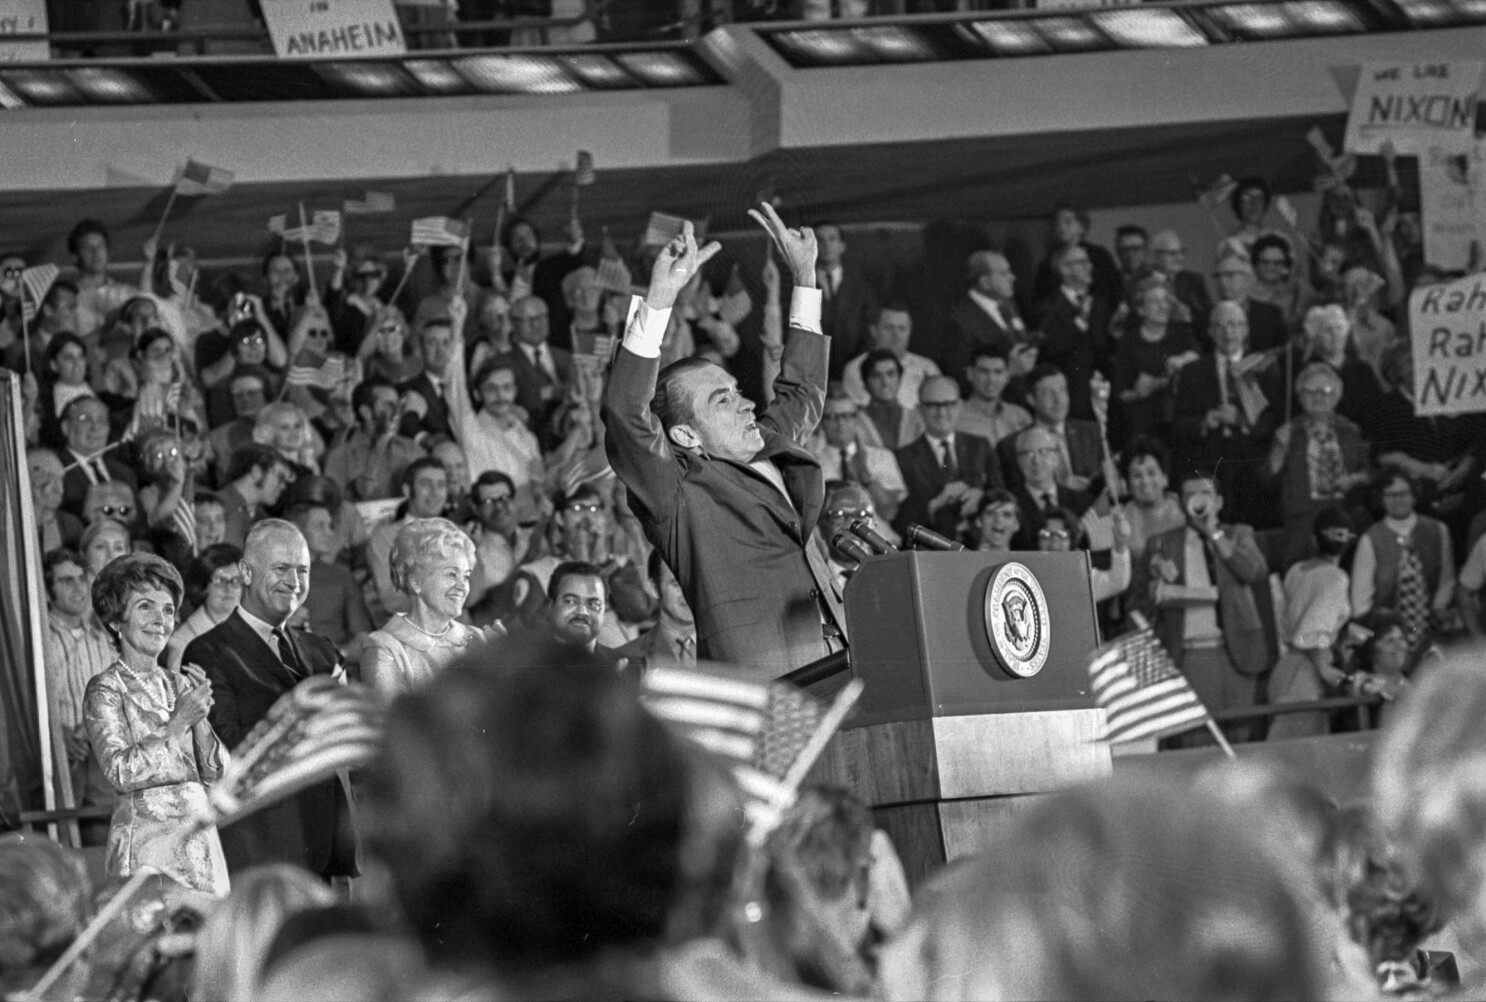 From the Archives: Nixon condemns violence at 1970 Anaheim rally - Los  Angeles Times